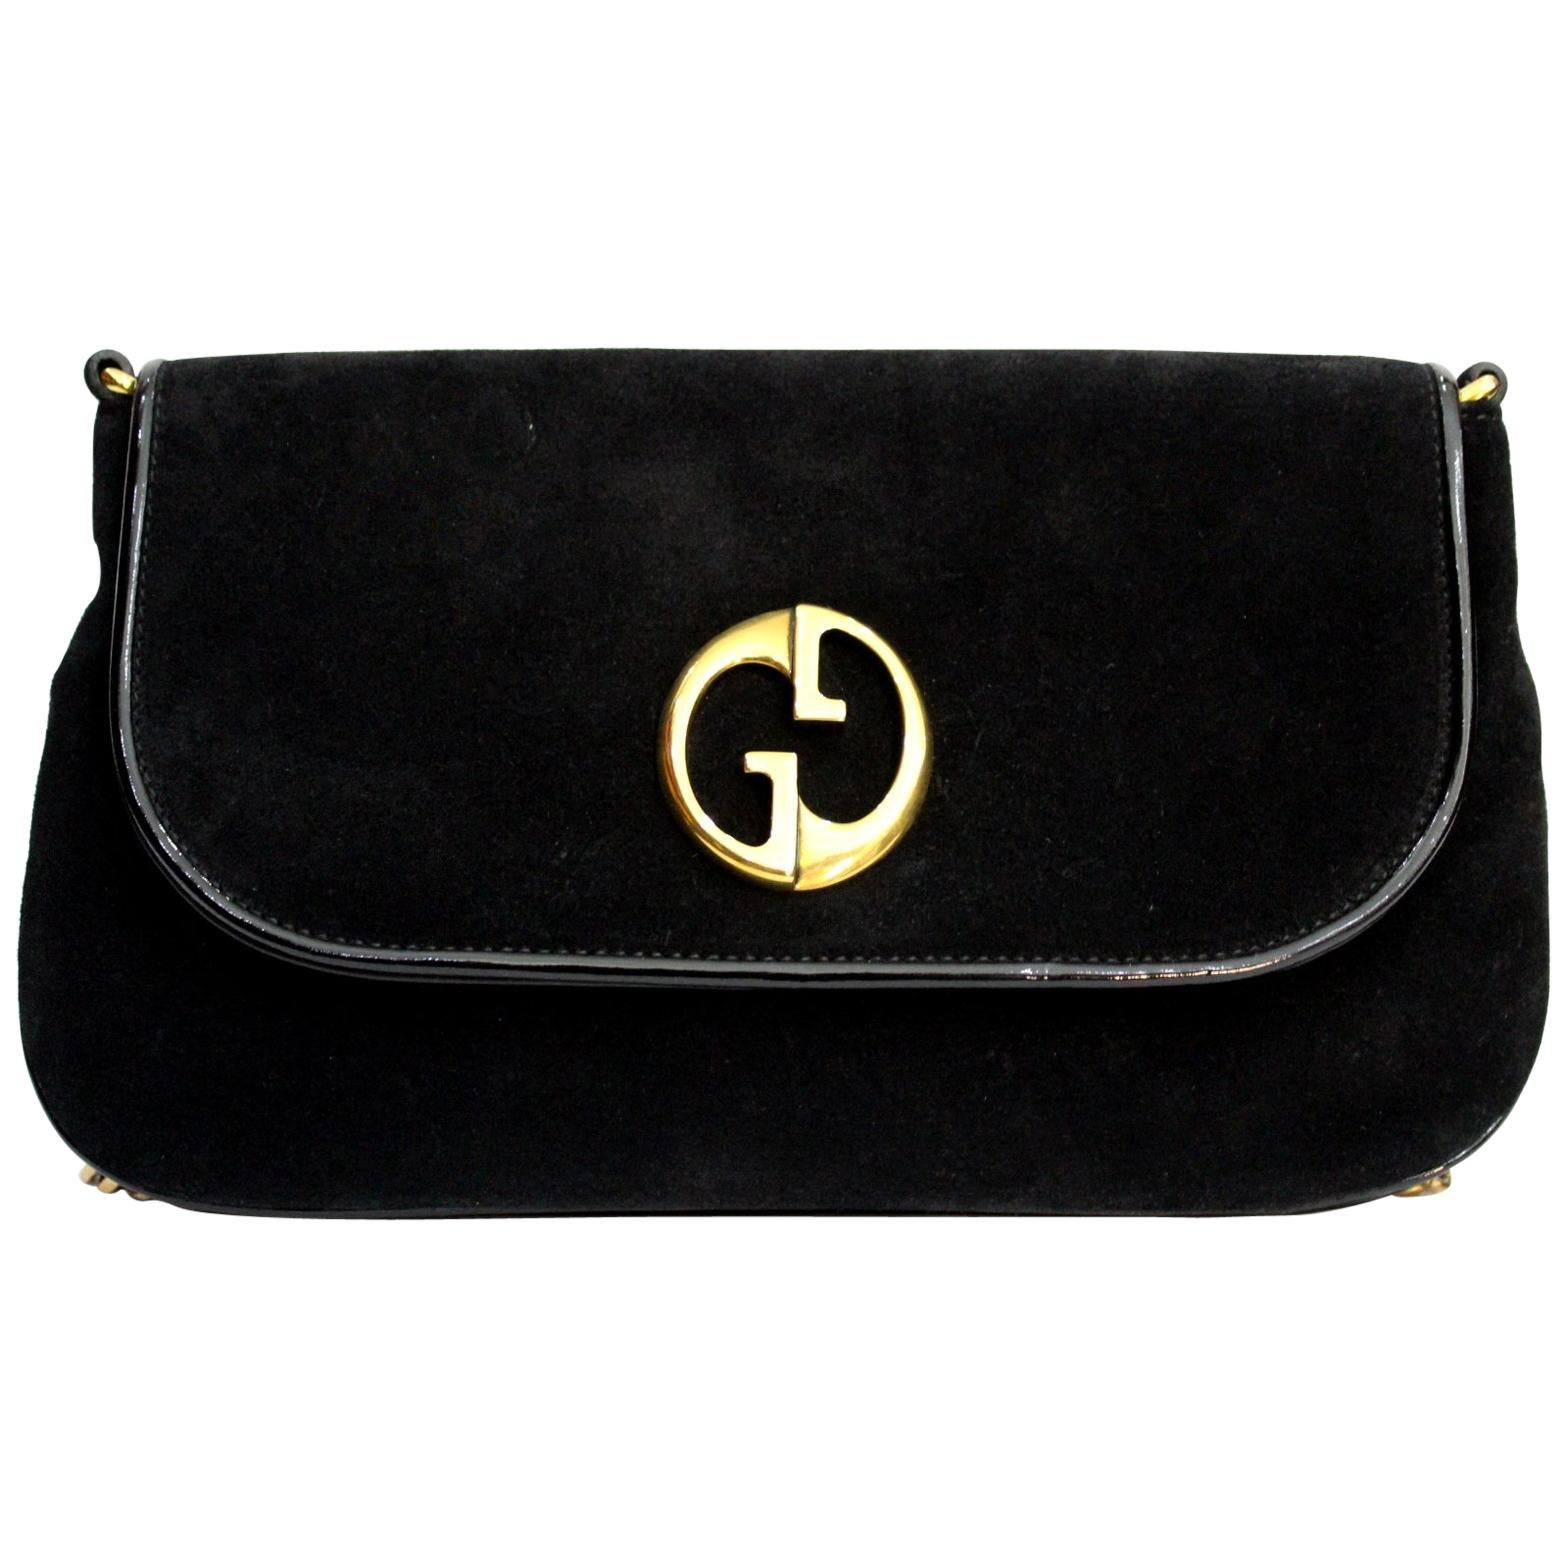 2391994c207c Gucci GG Marmont velvet shoulder bag at 1stdibs